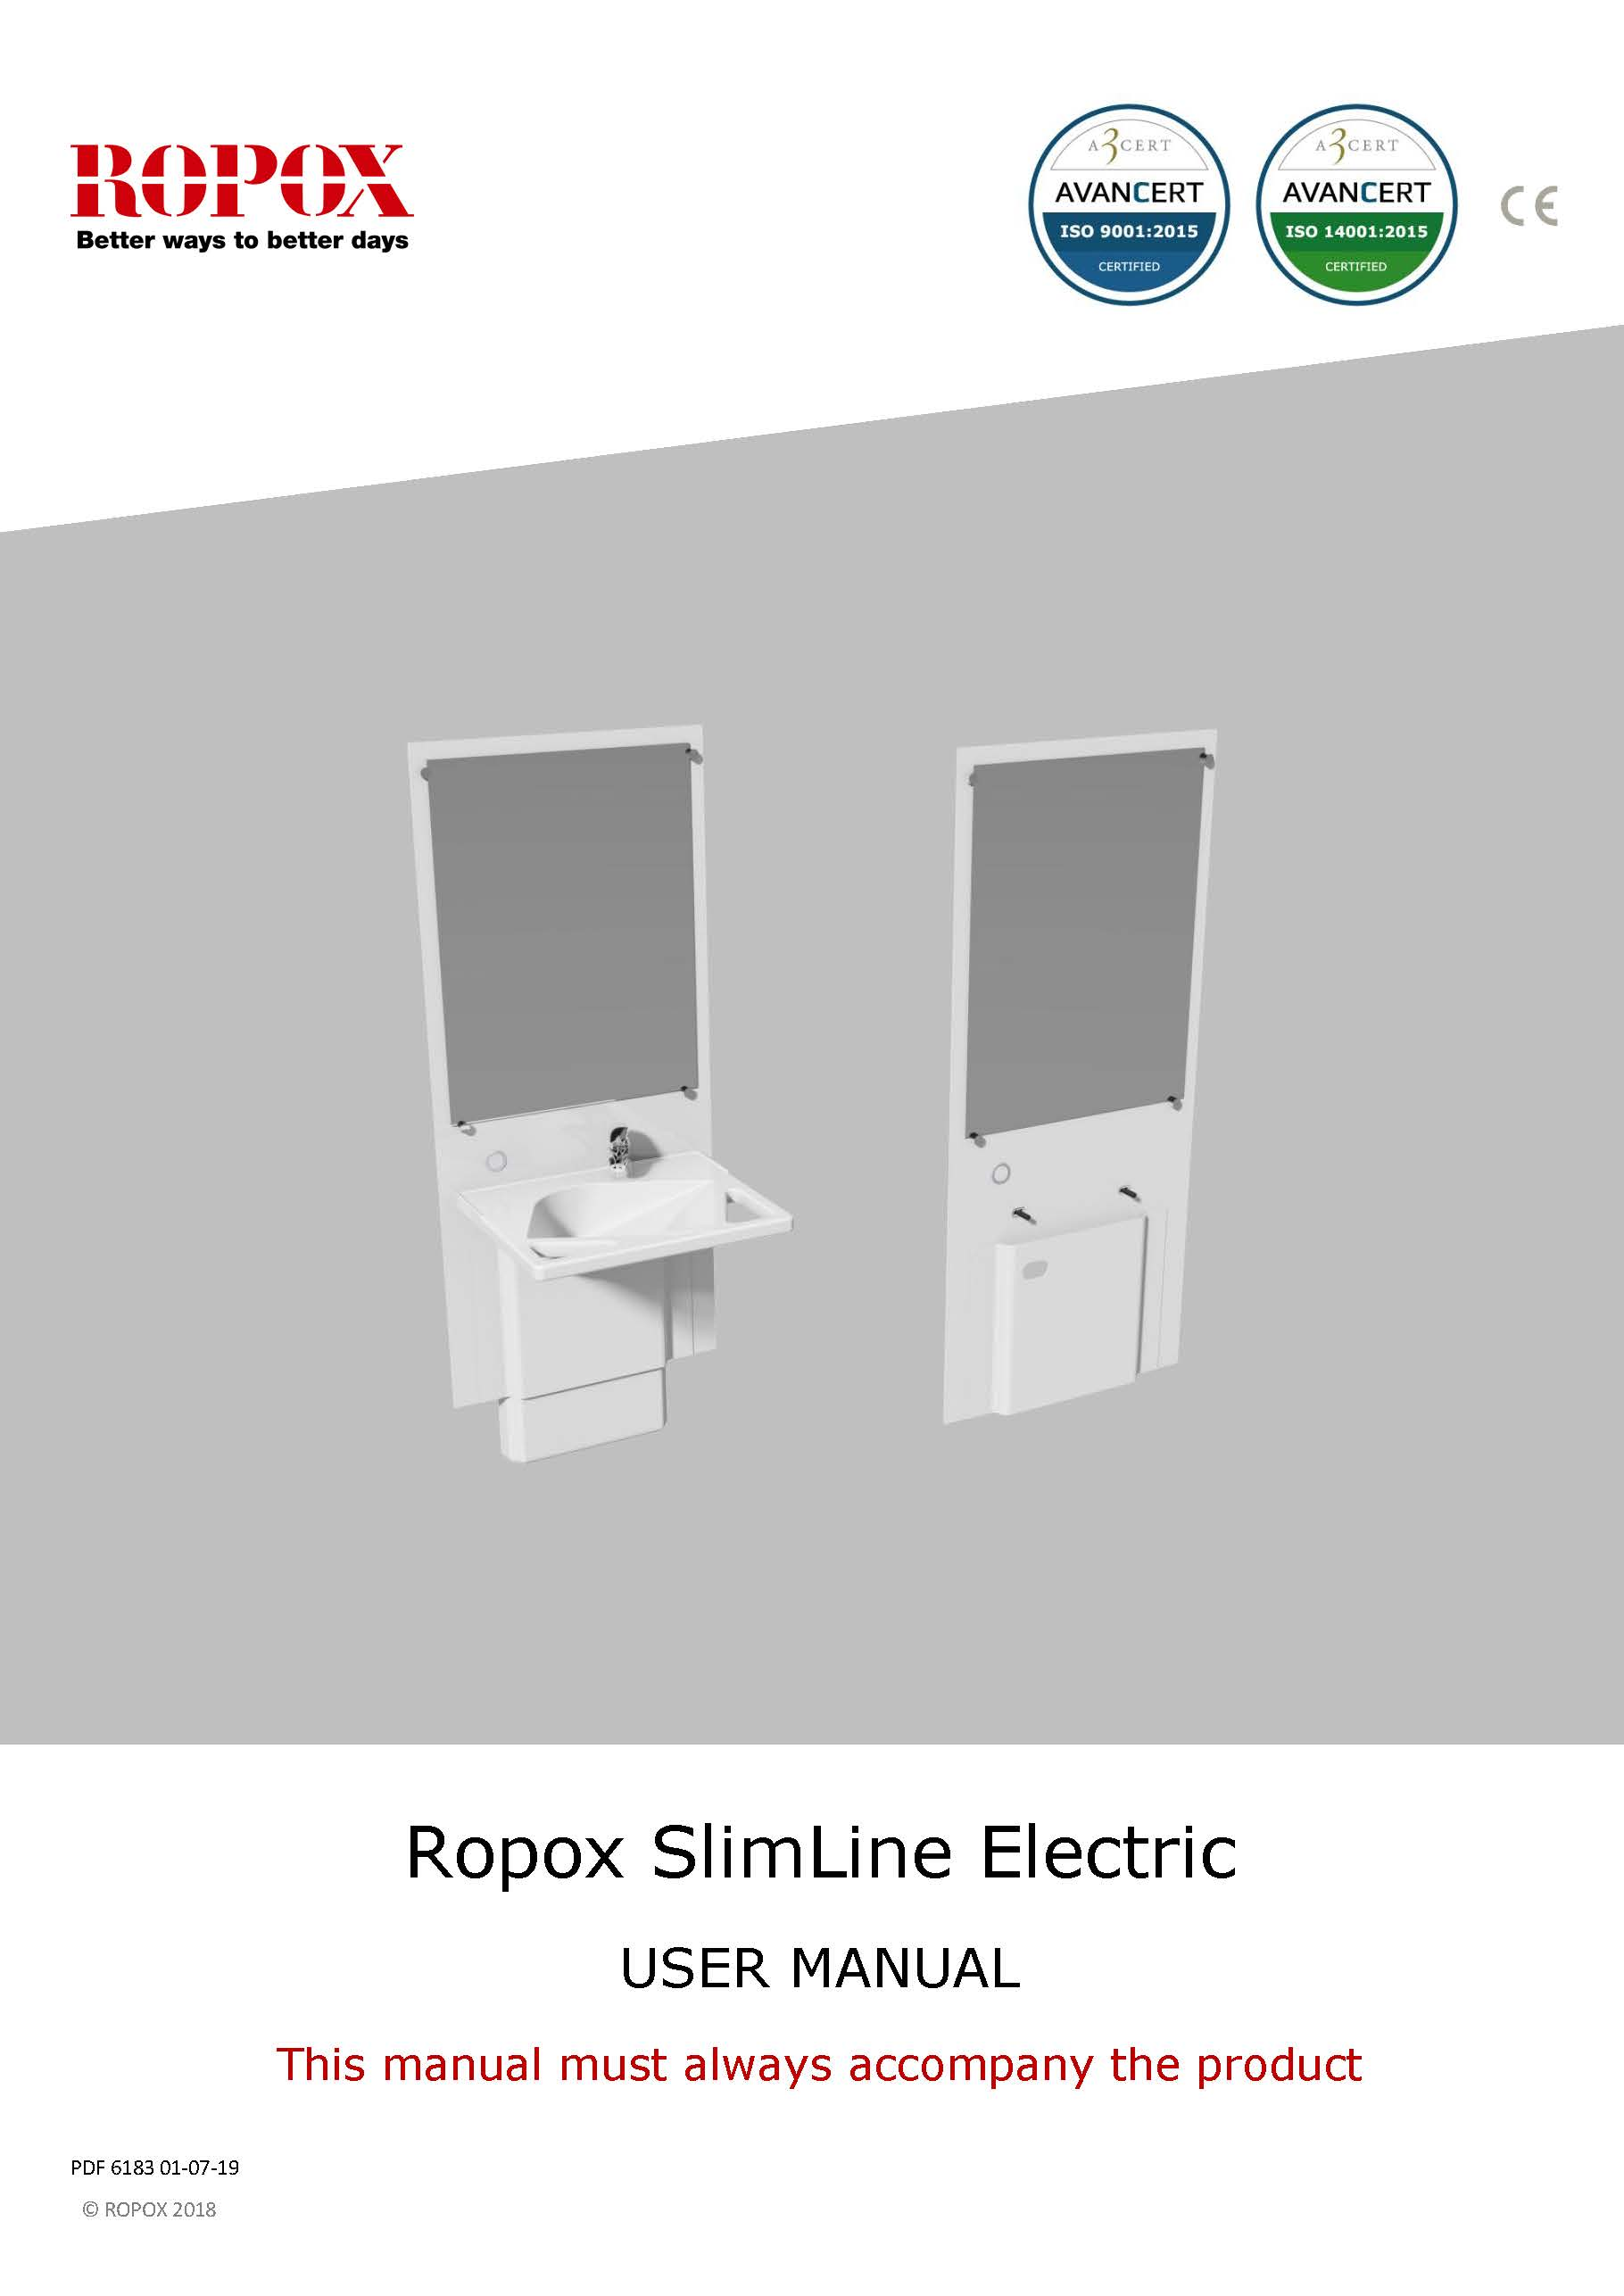 Ropox SlimLine Electric